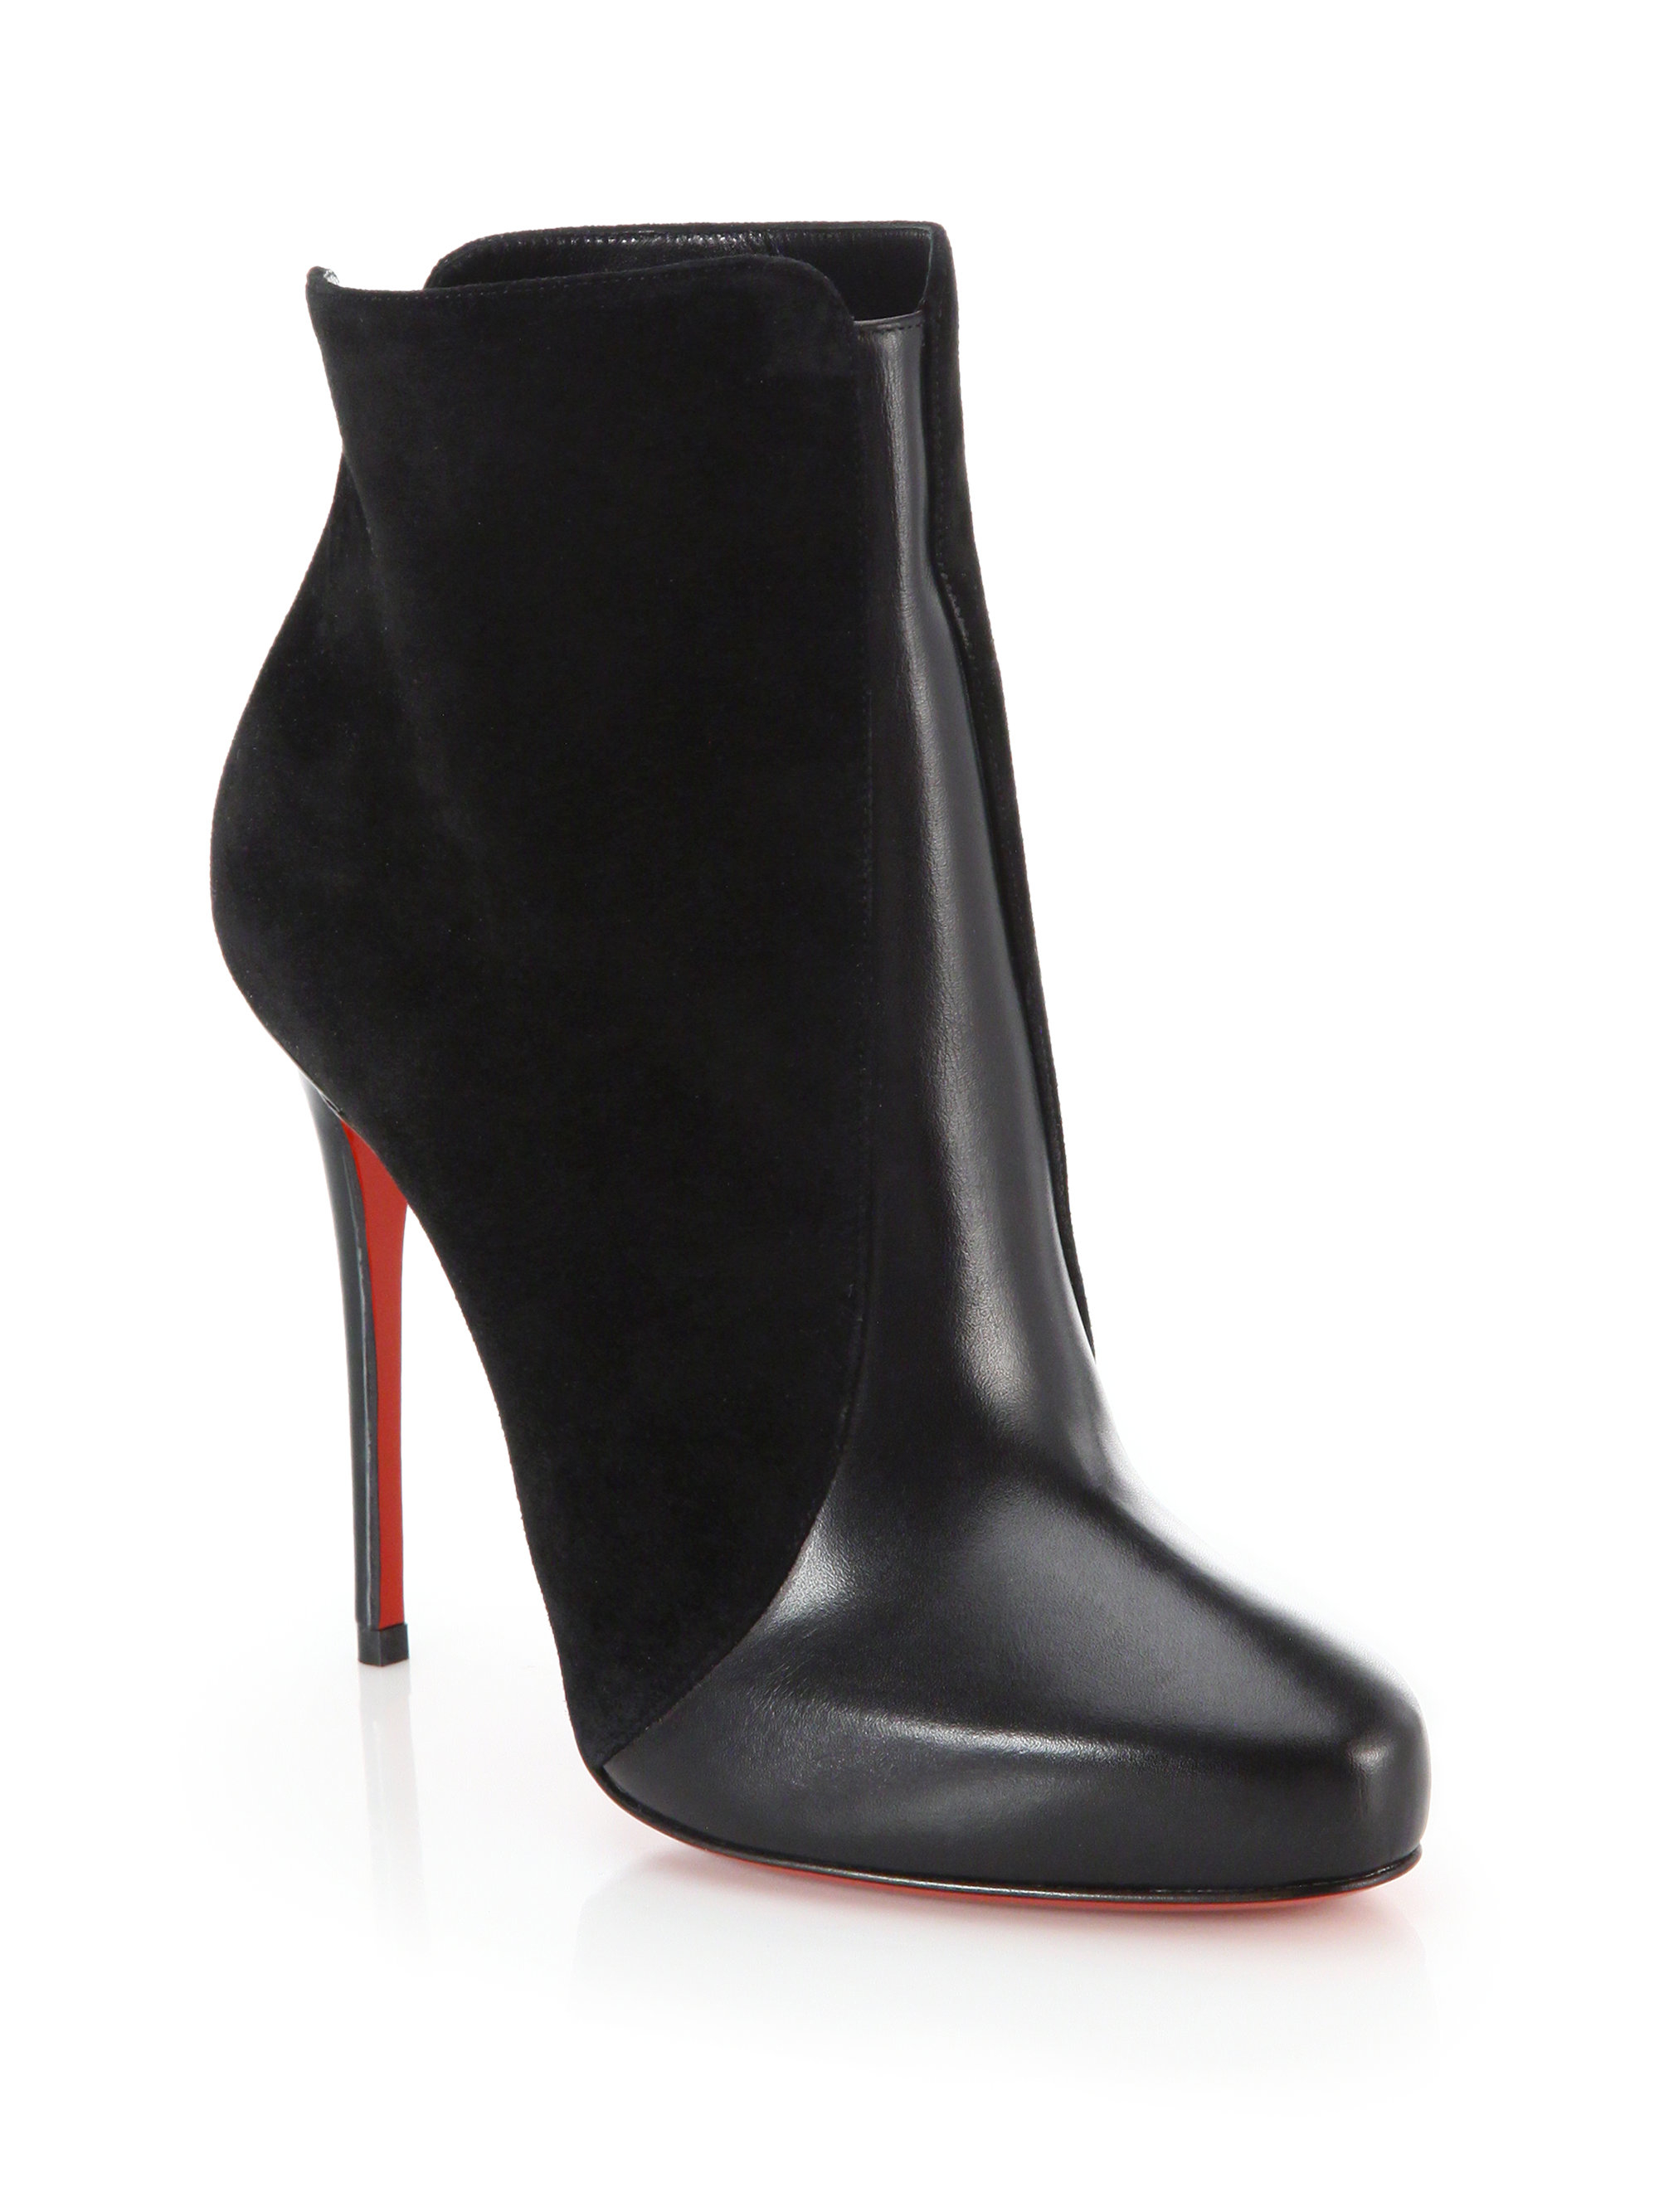 louboutin shoe prices - Christian louboutin Geatanina Suede and Leather Ankle Boots in ...